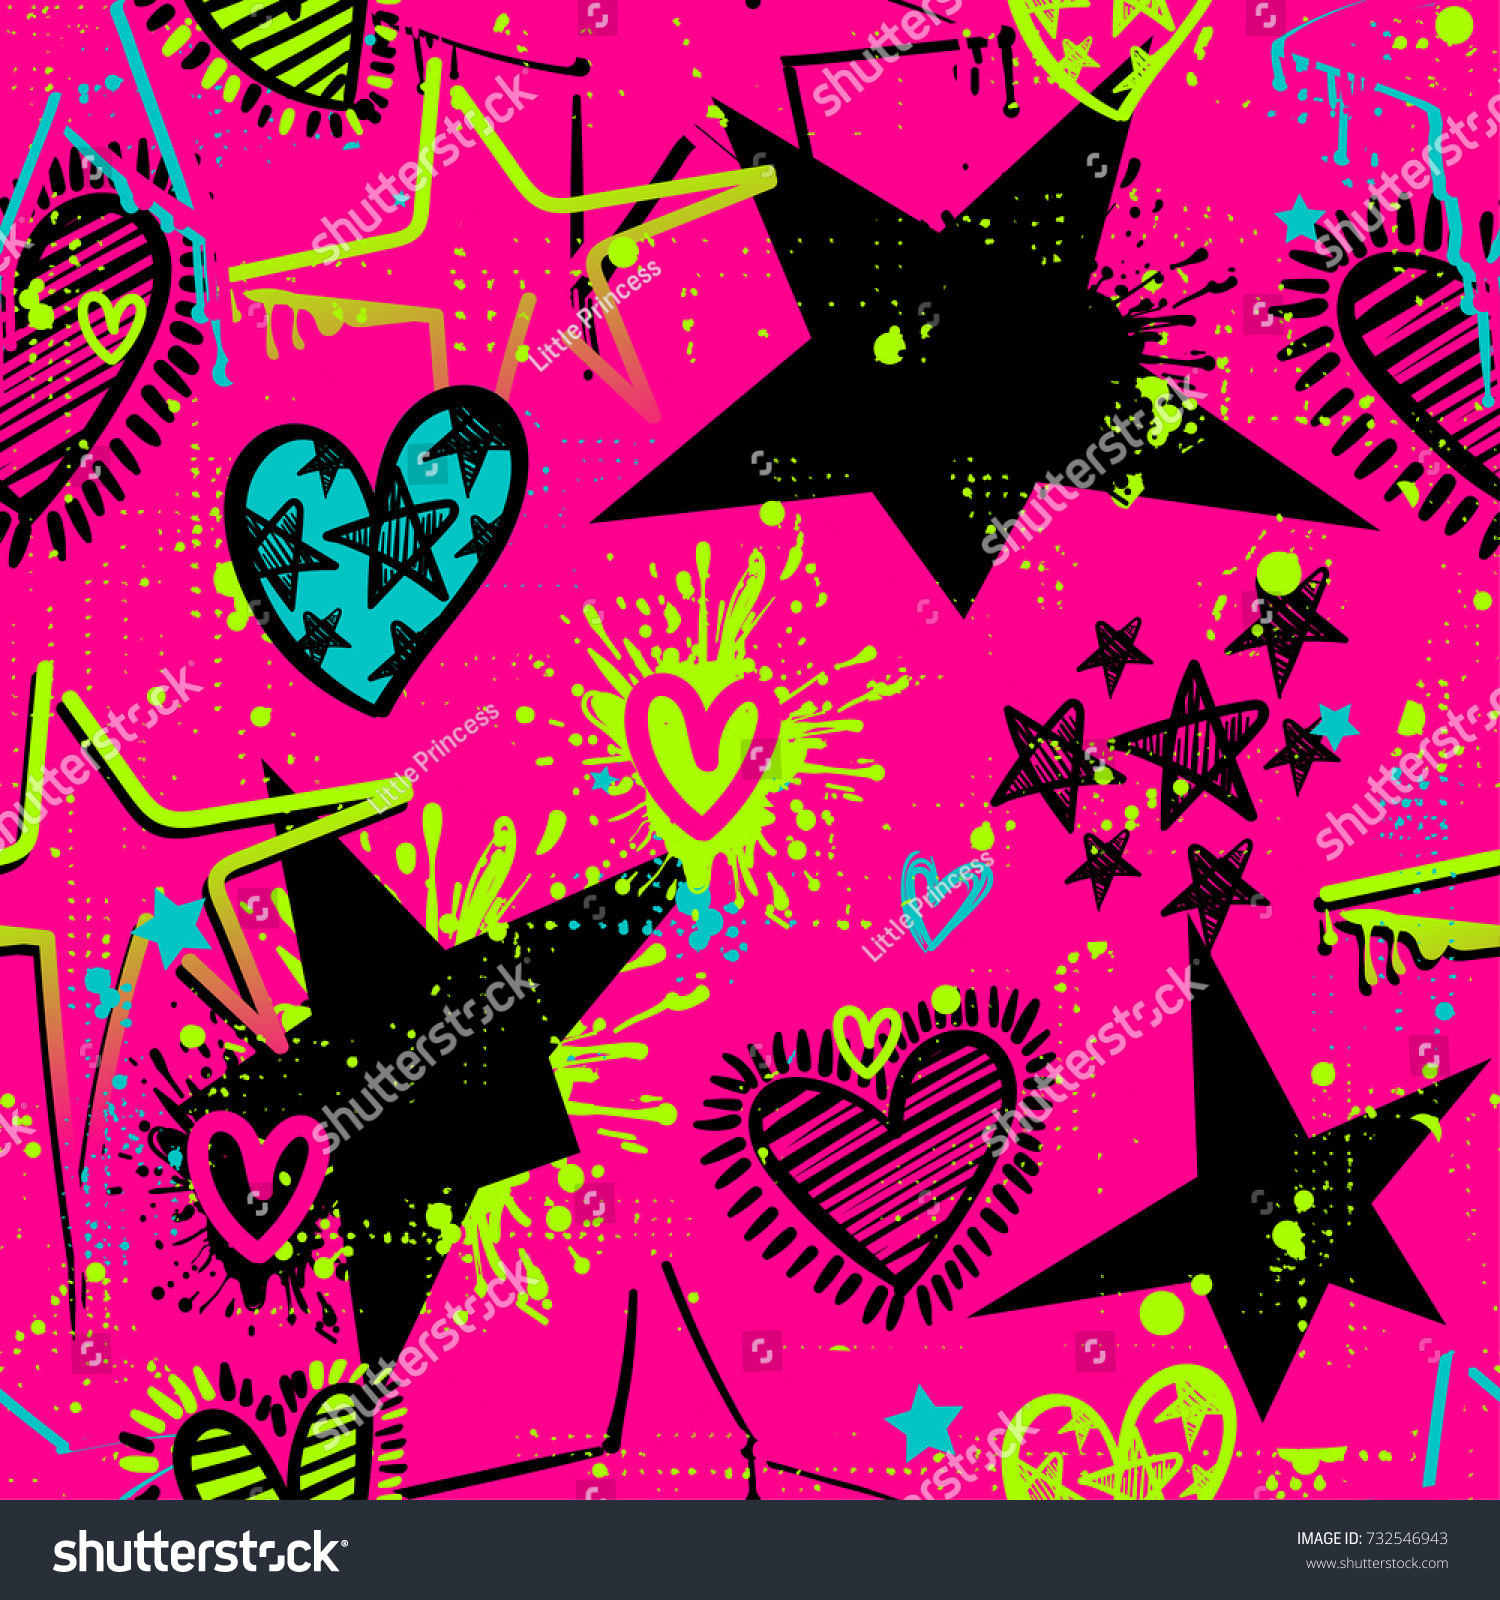 Abstract seamless stars and hearts pattern on pink background with bright colorful shape spray paint